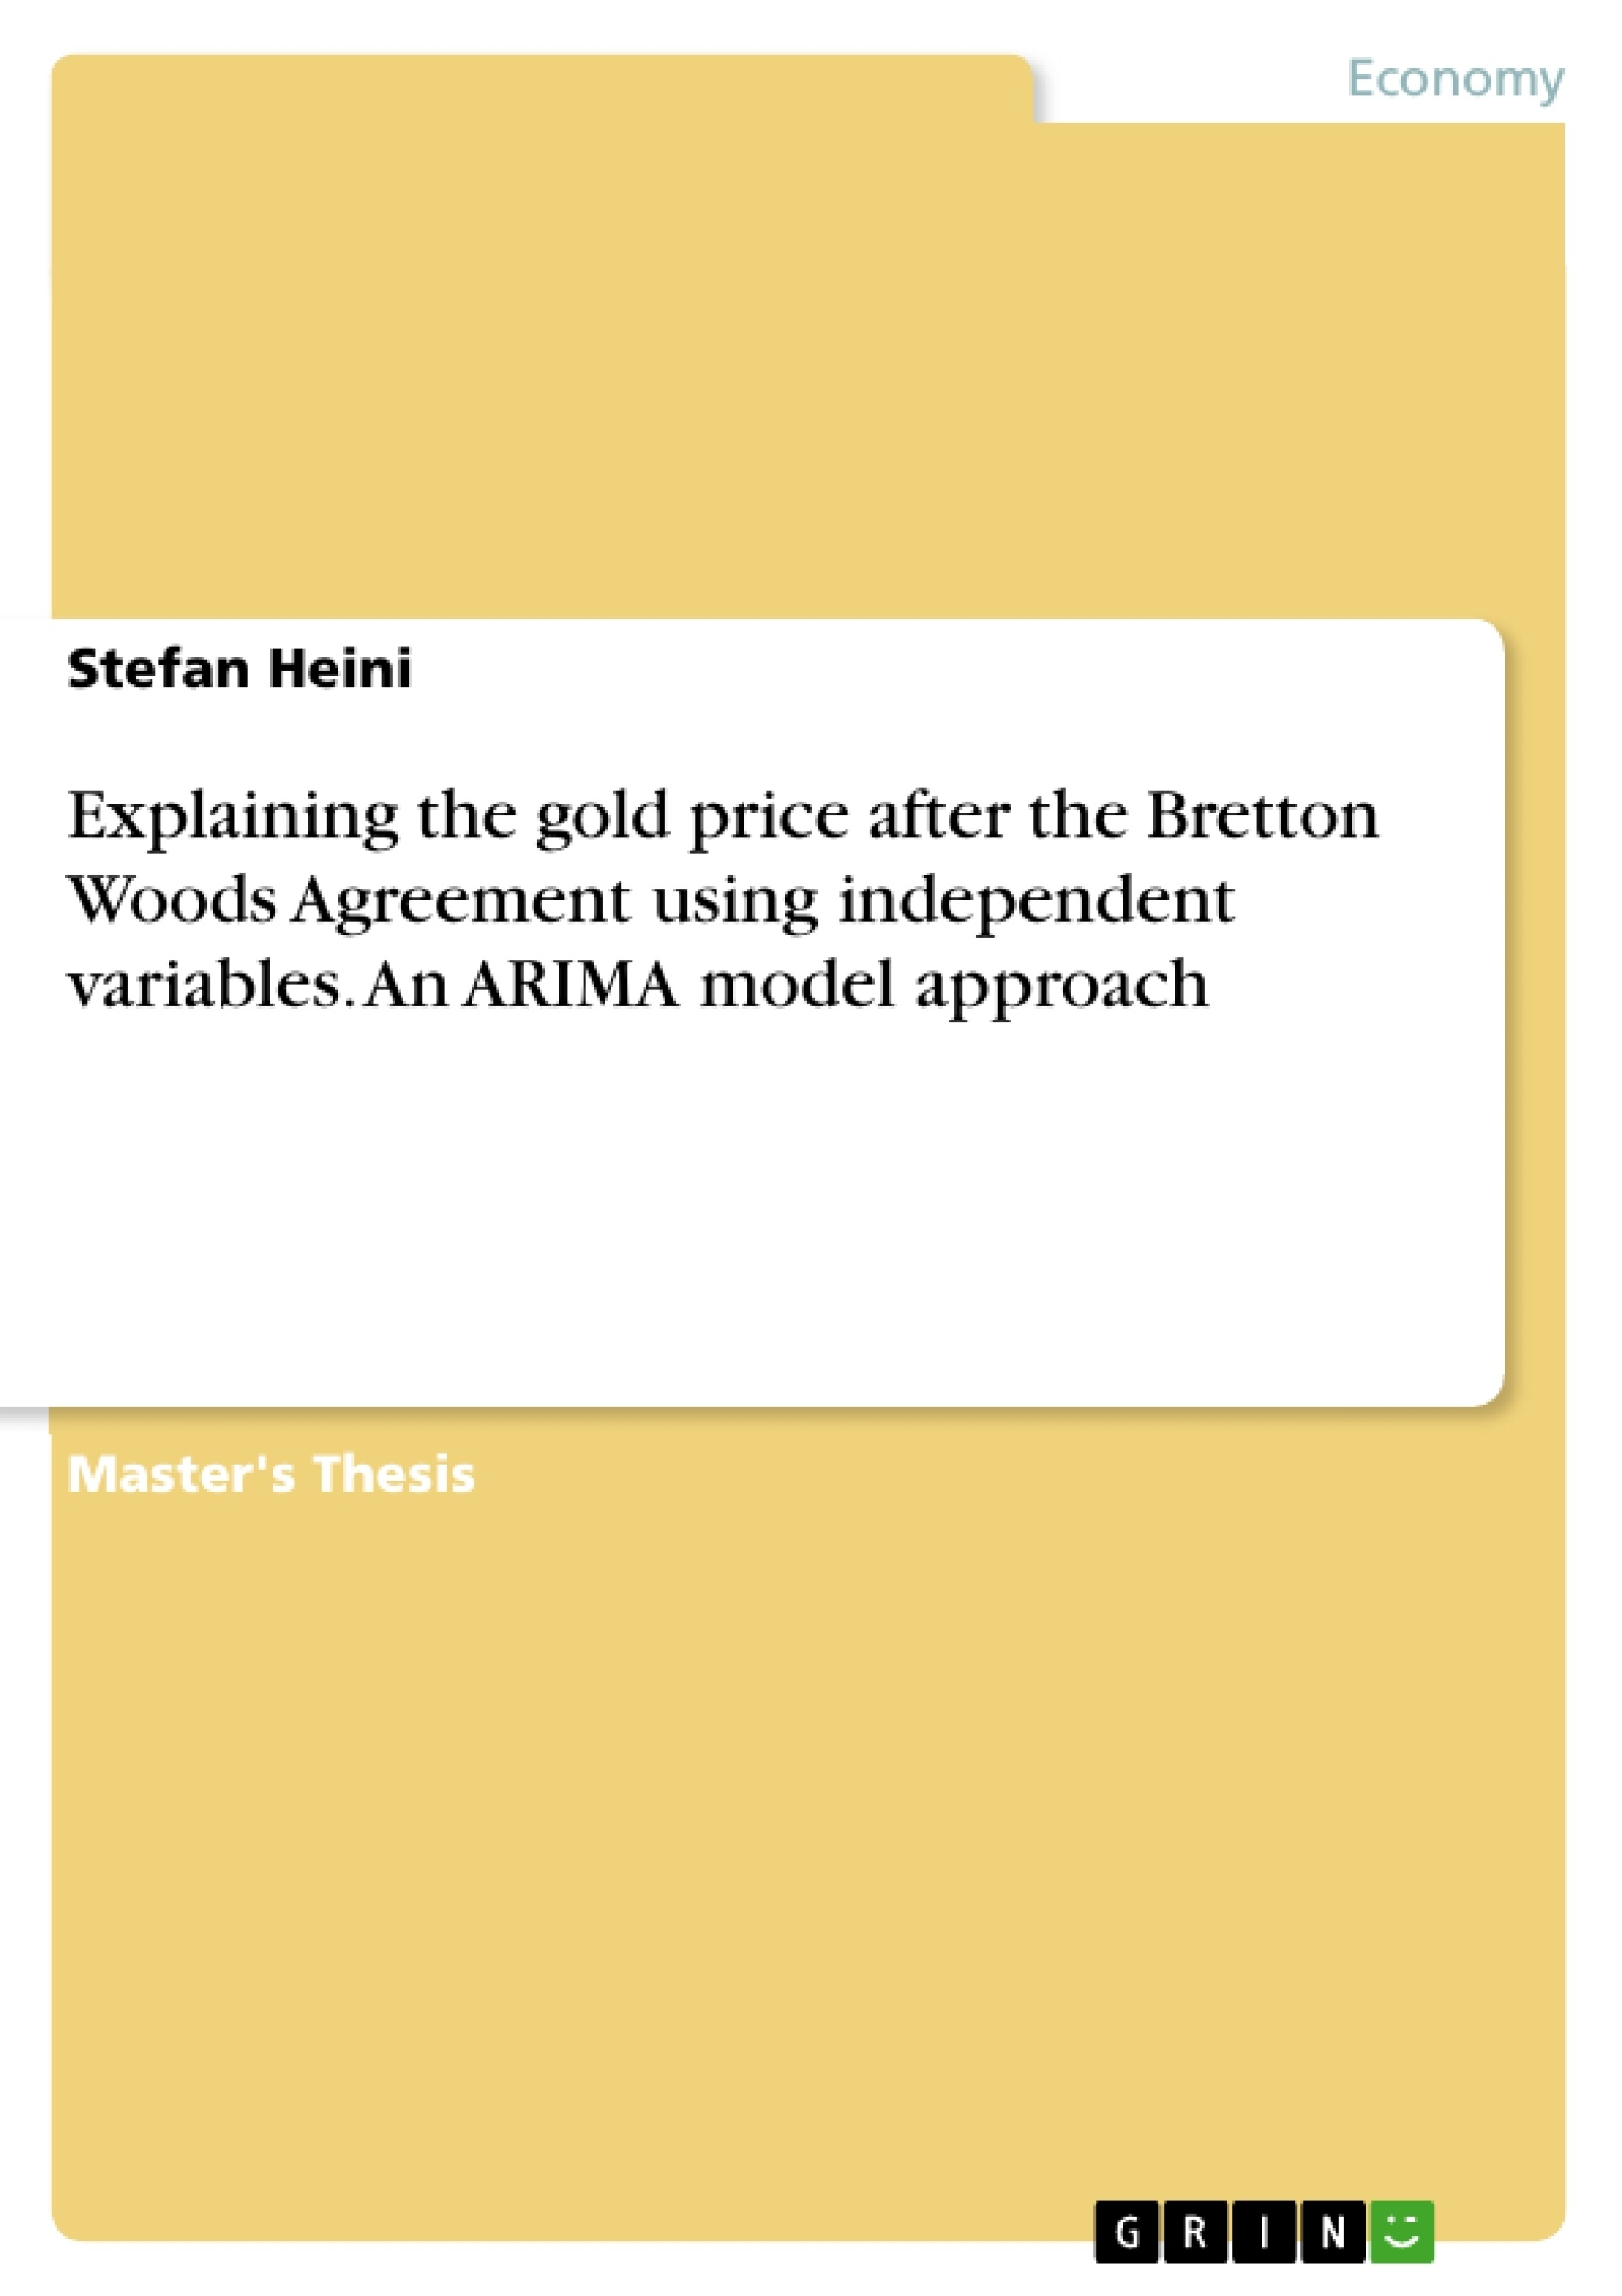 Title: Explaining the gold price after the Bretton Woods Agreement using independent variables. An ARIMA model approach